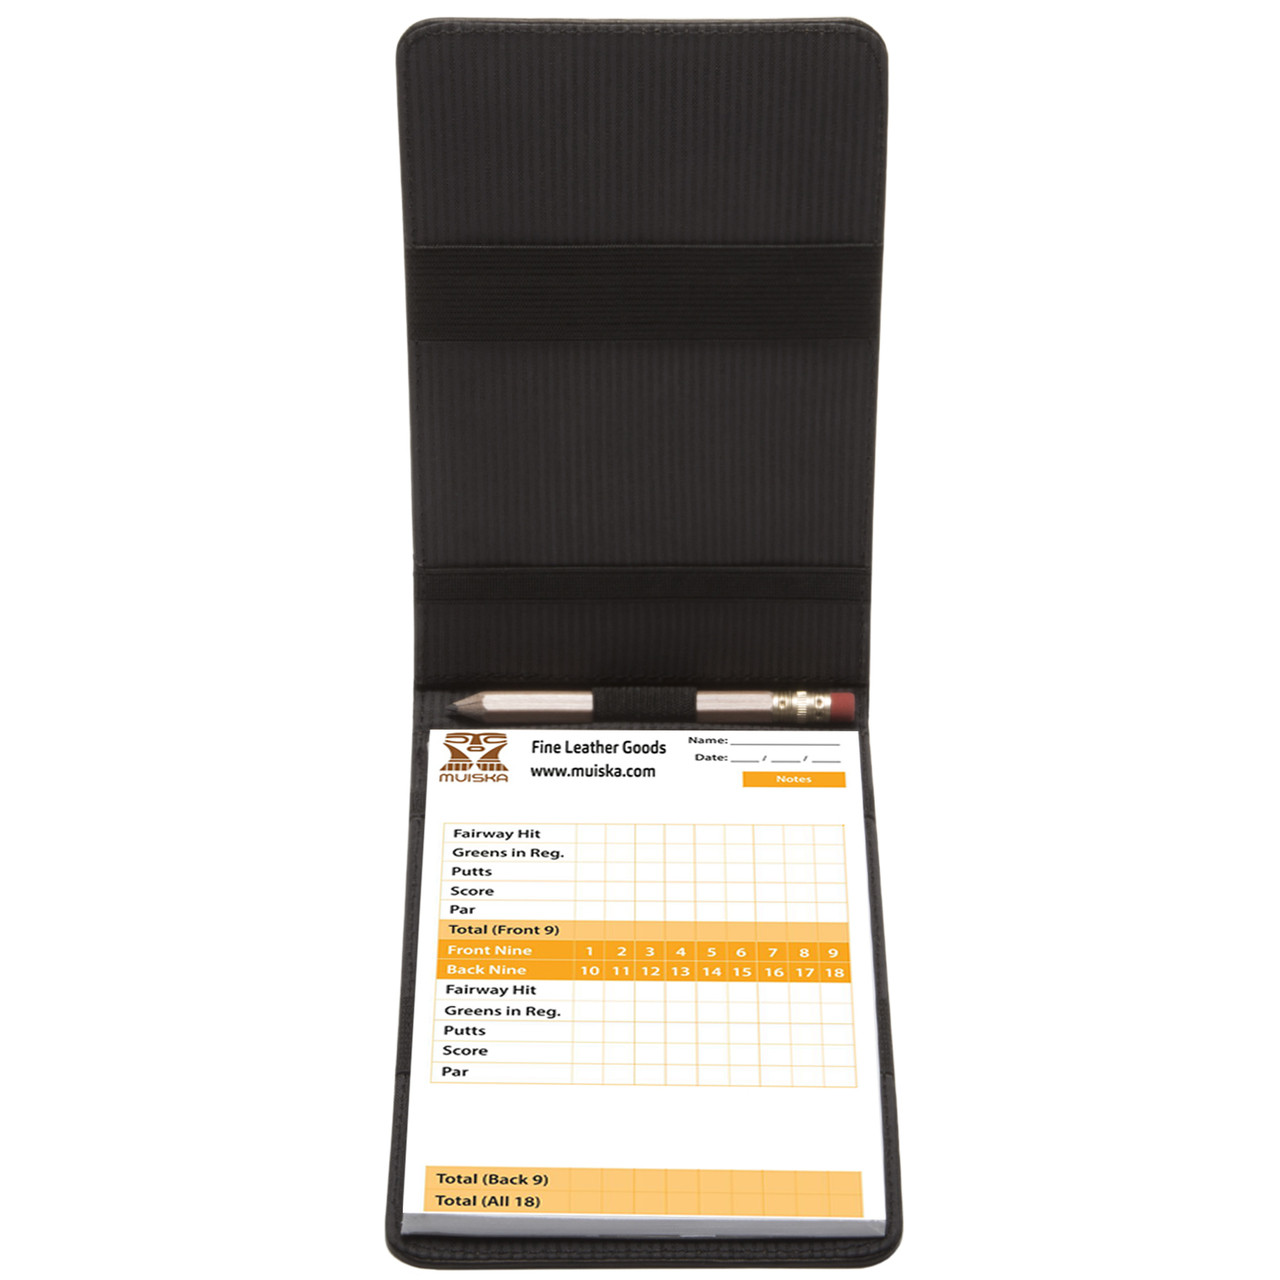 Muiska - Gino - scorecard holder comes with a pencil.